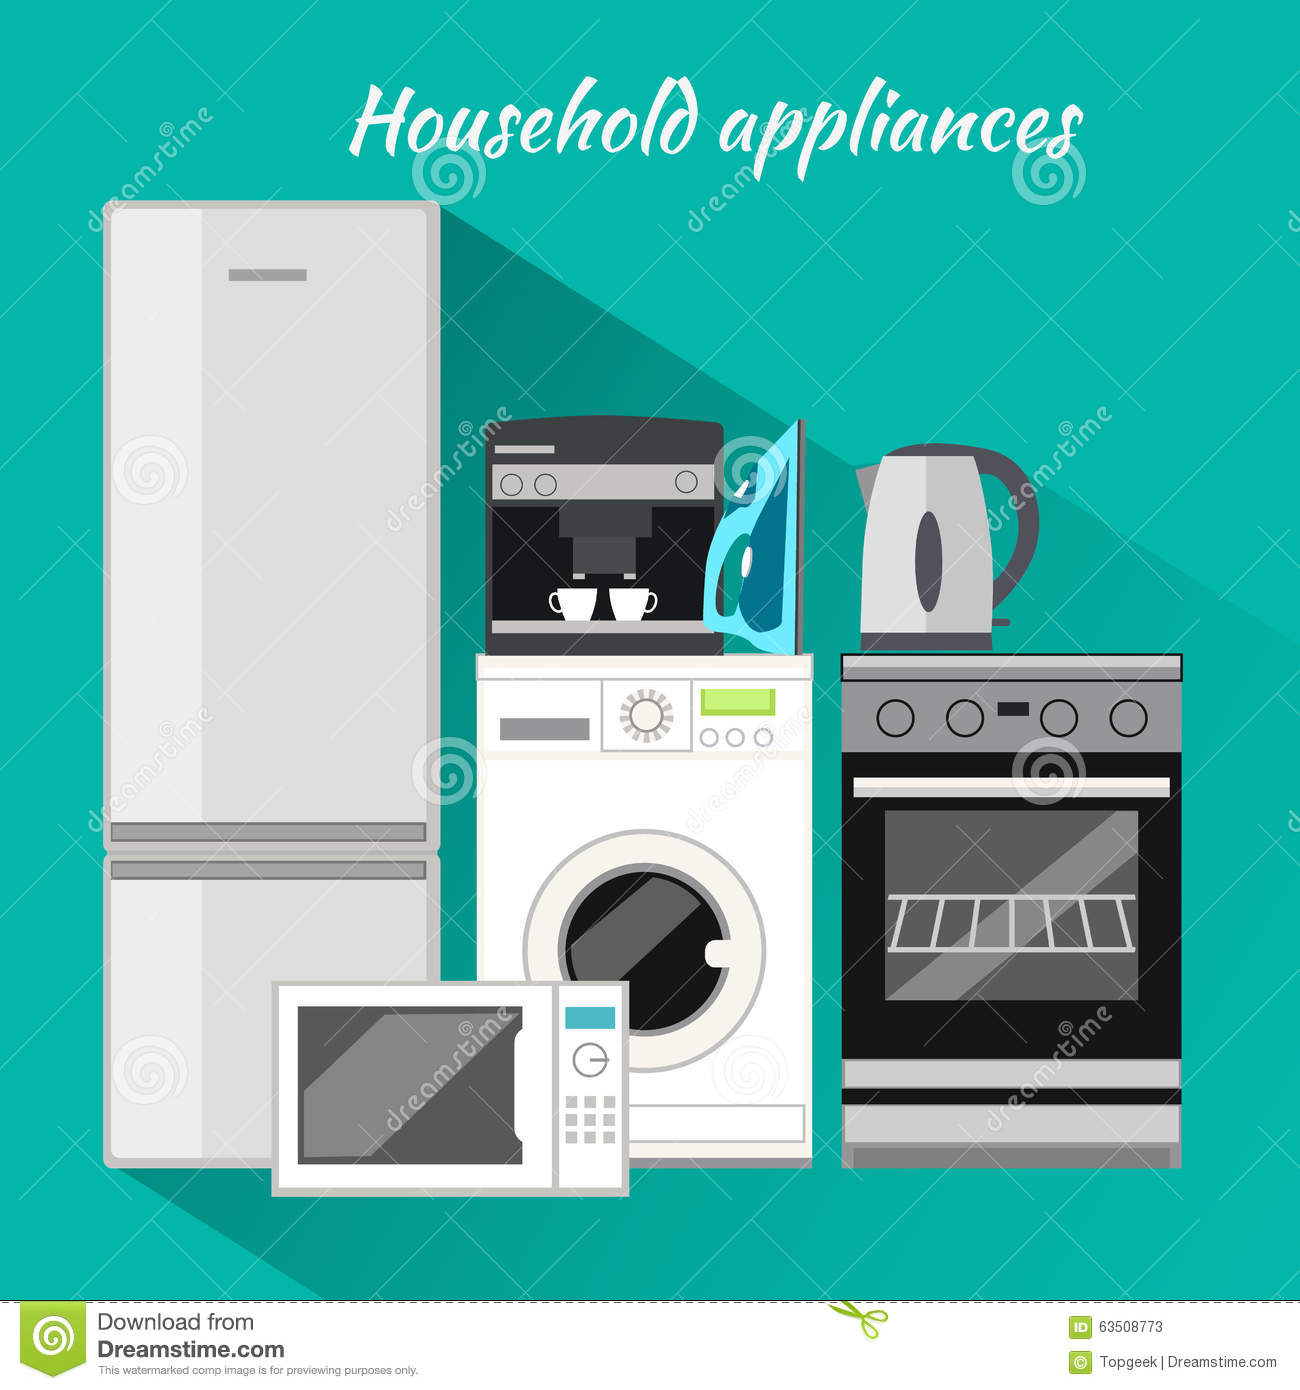 Household appliances flat design stock vector for Household appliances design